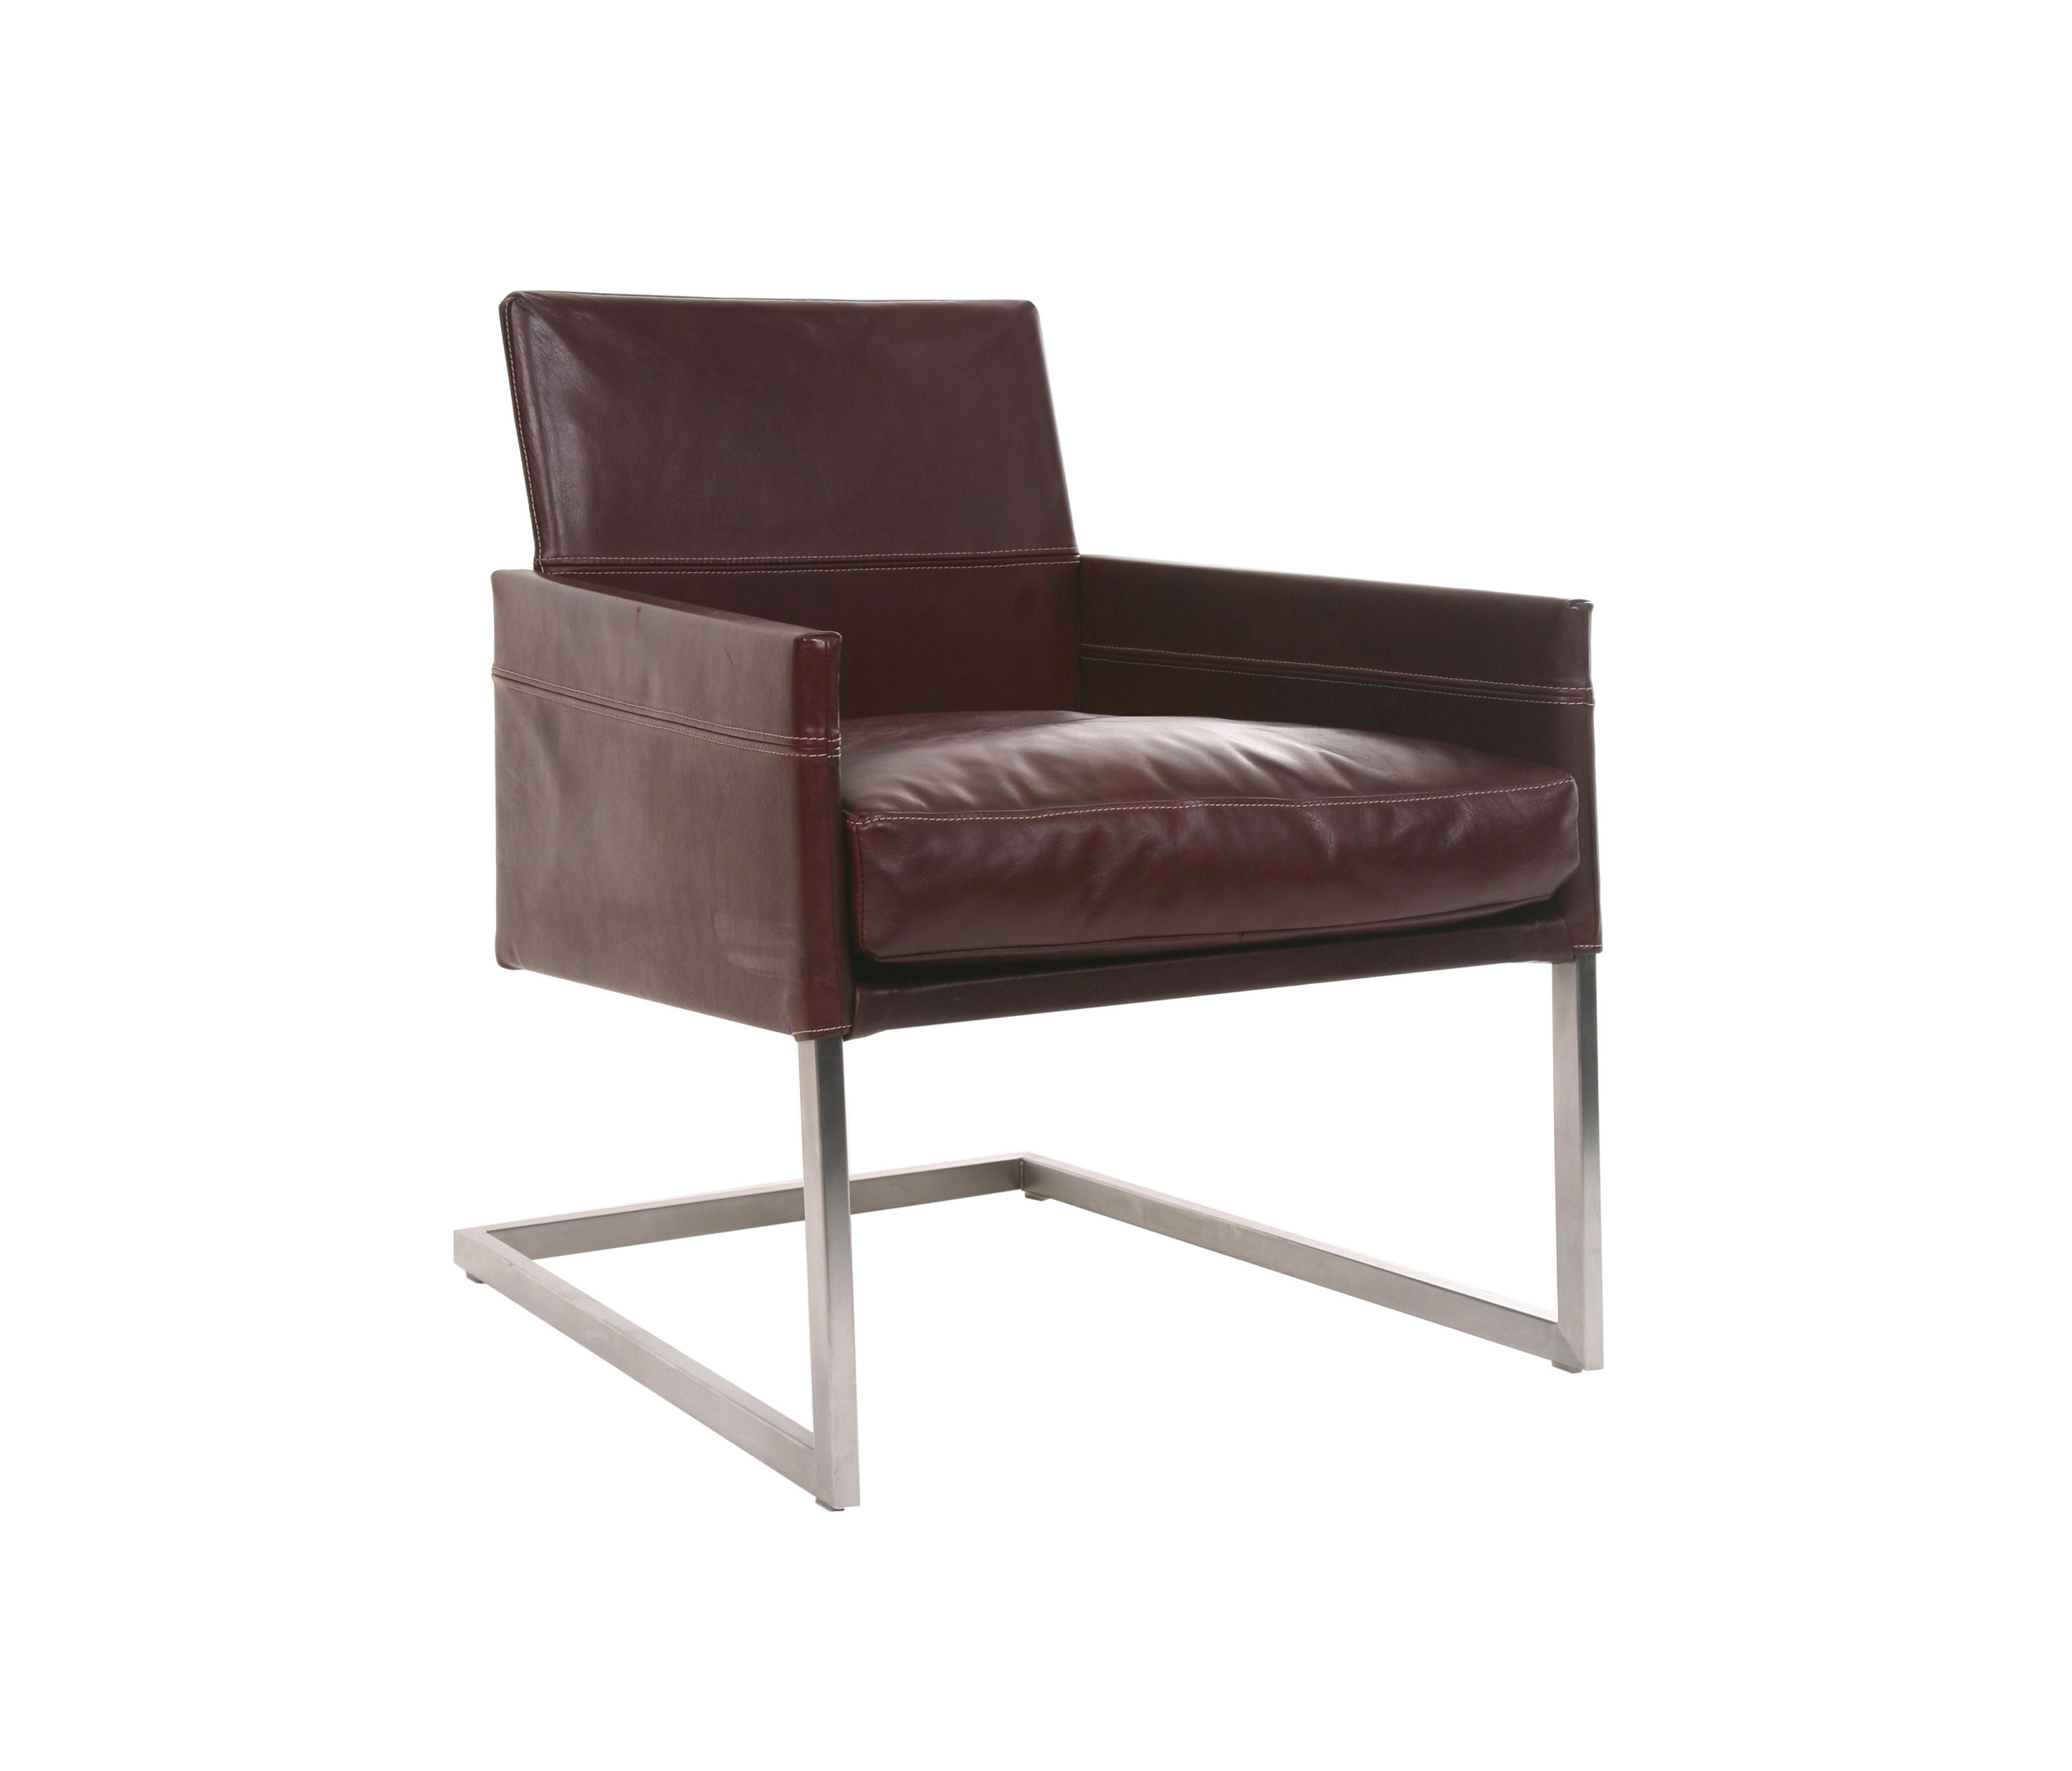 texas xxl cantilever chair lounge chairs from kff. Black Bedroom Furniture Sets. Home Design Ideas